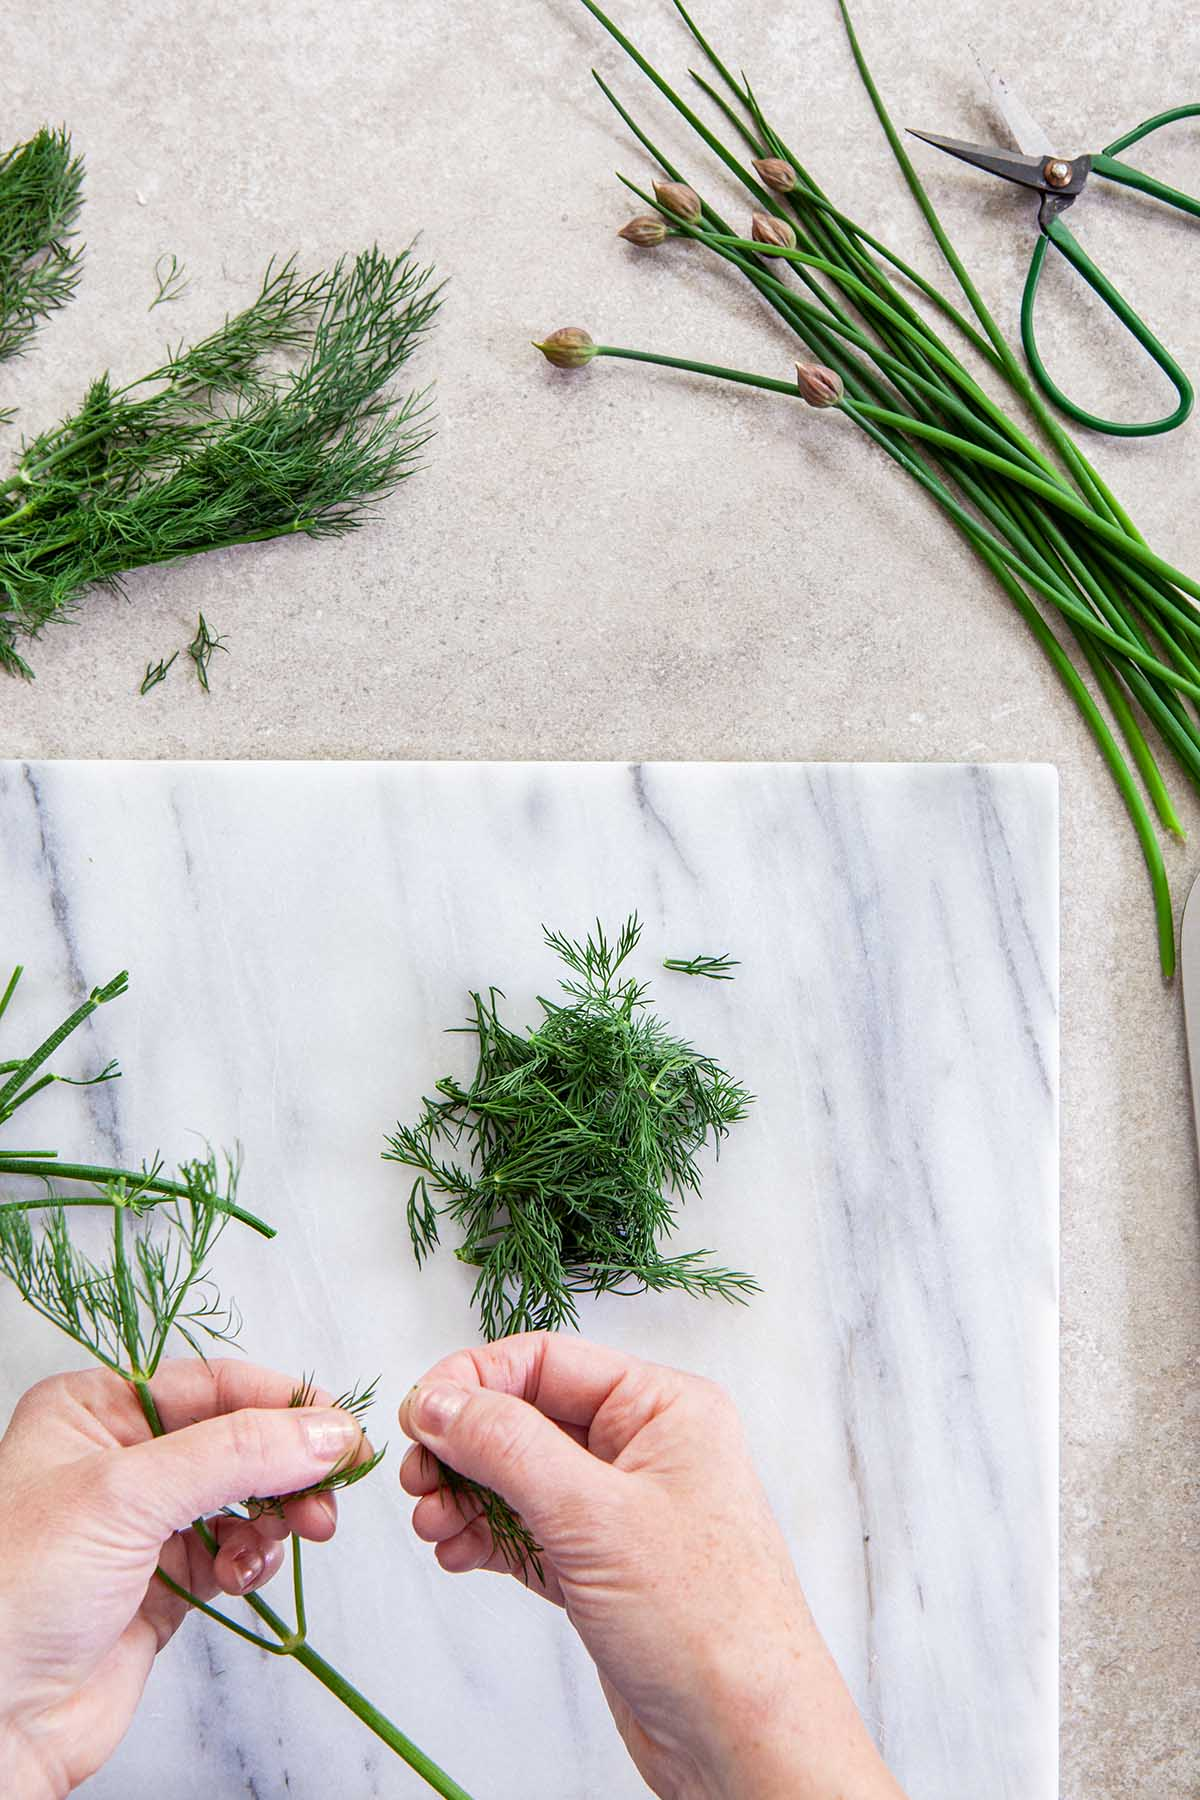 Two hans separating dill fronds from the stems over a marble surface.